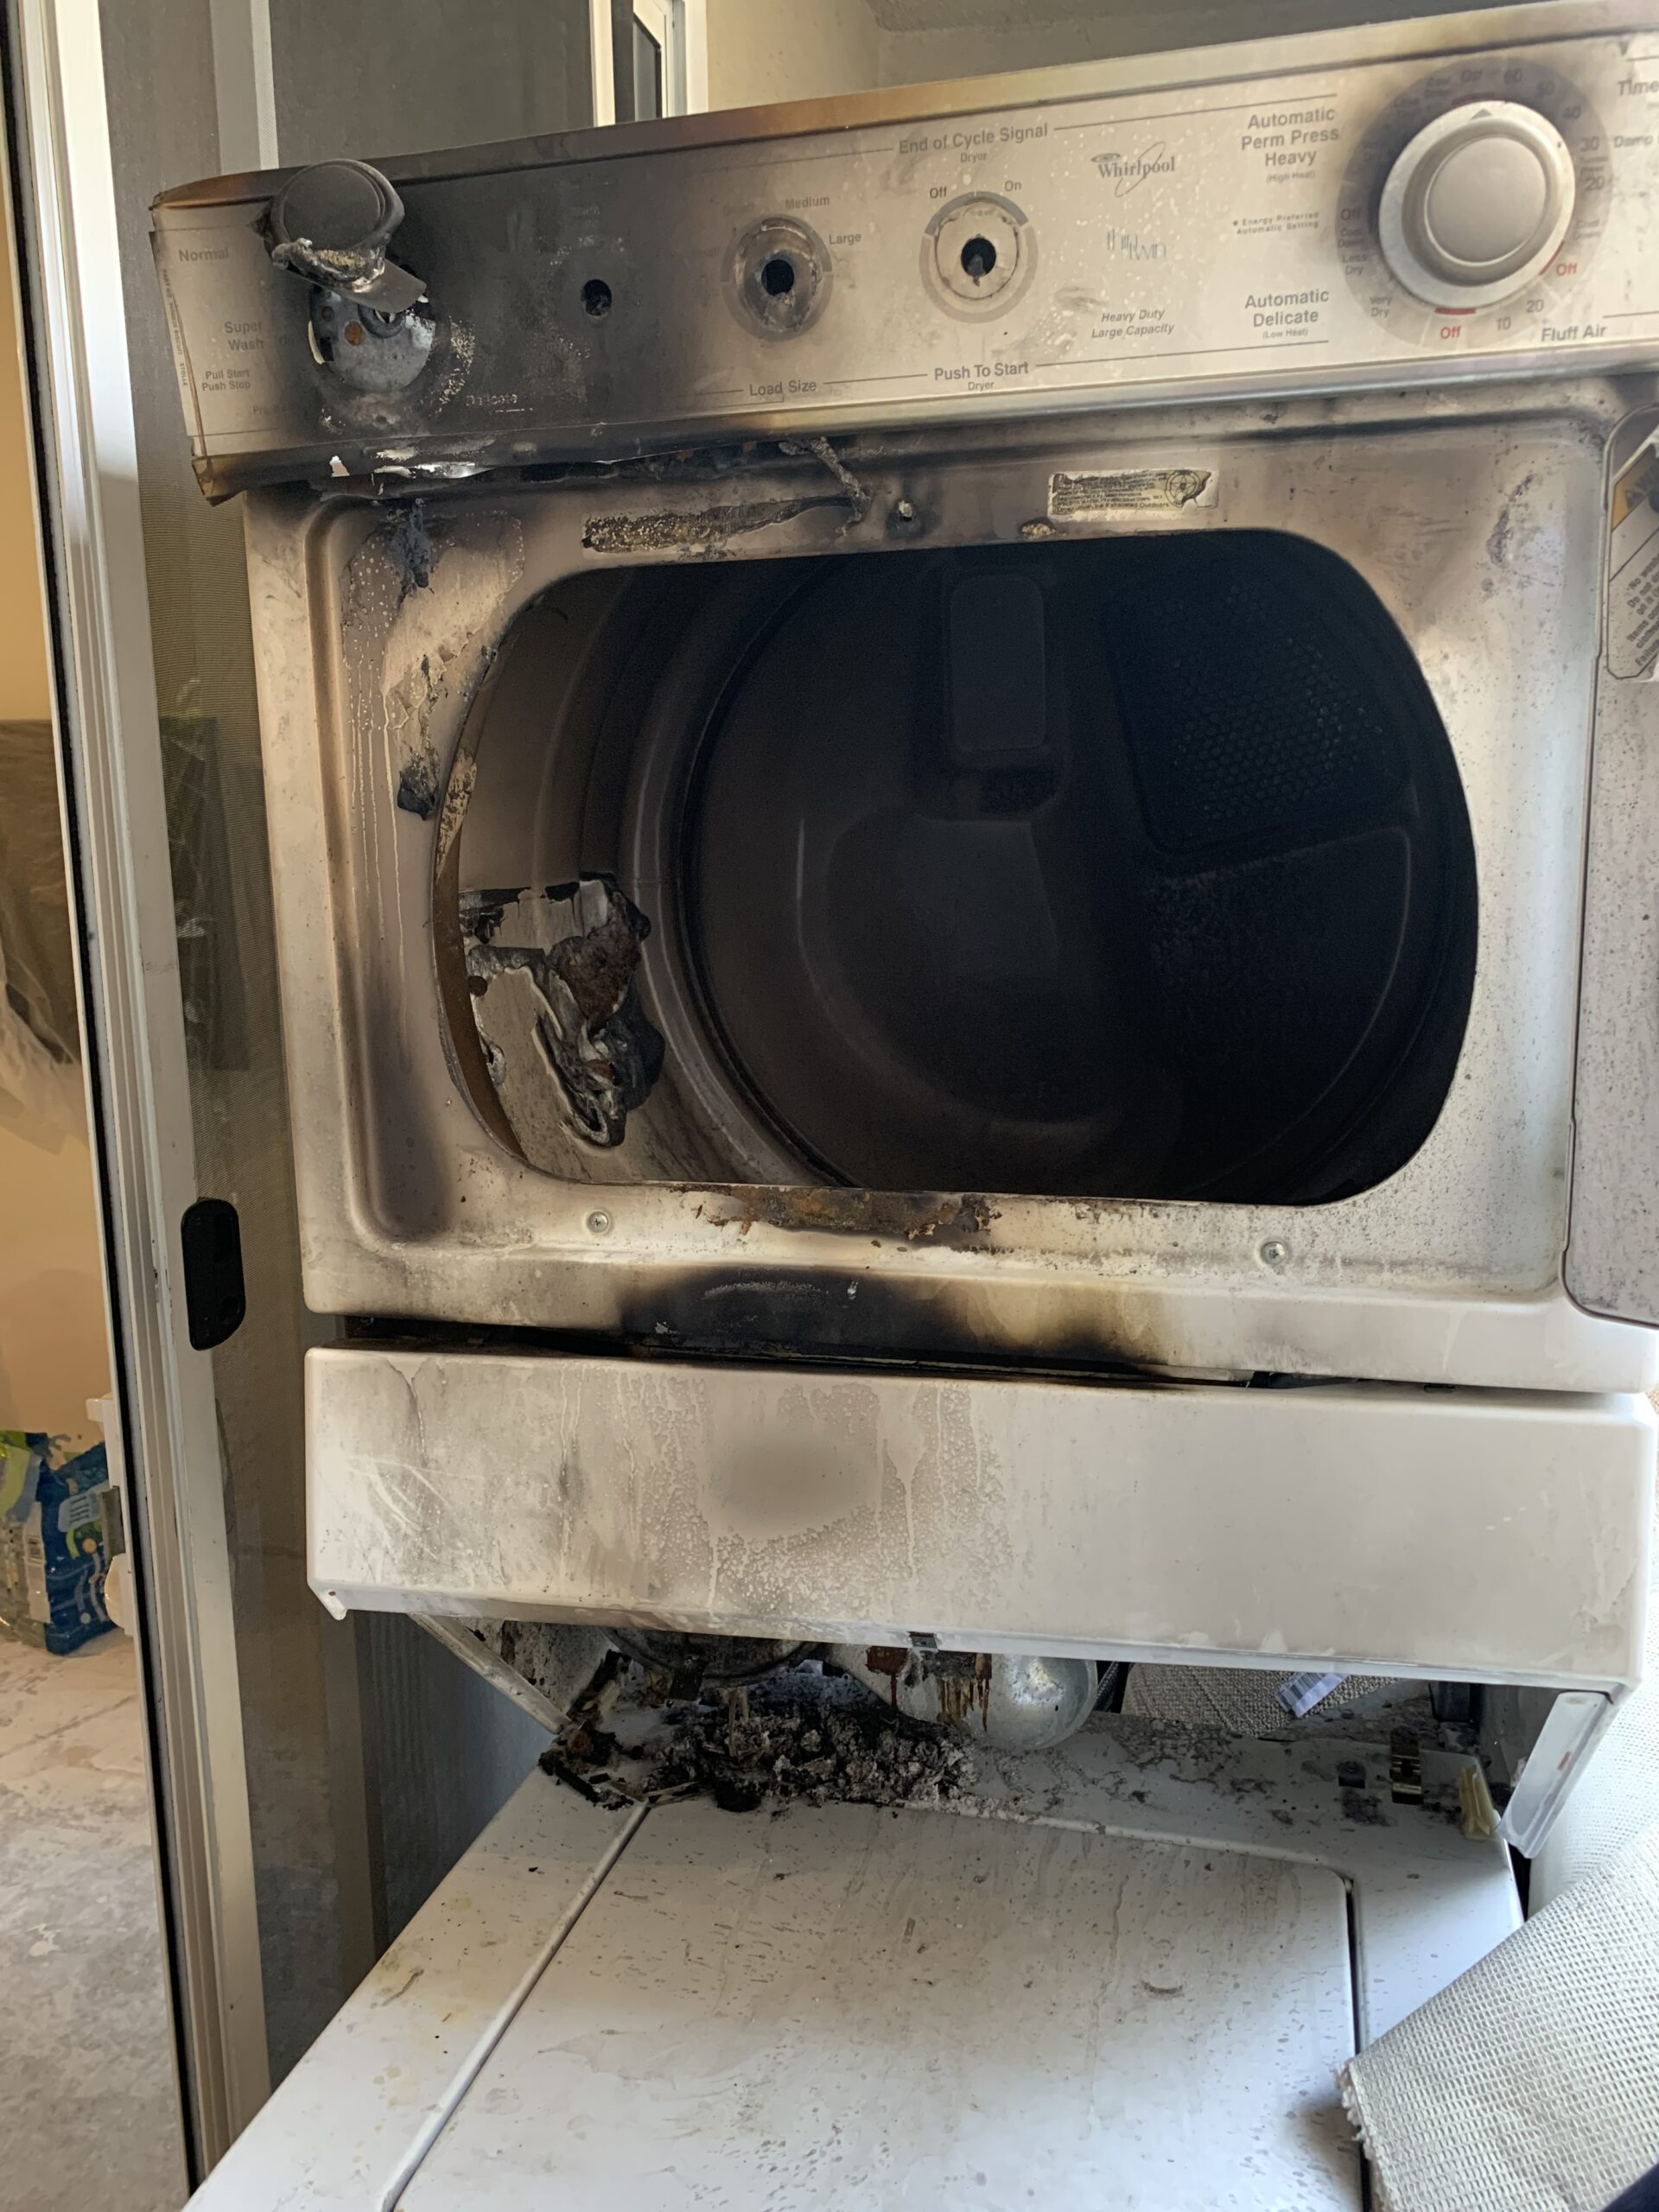 Burnt Dryer caused by the lint trap getting clogged and catching fire